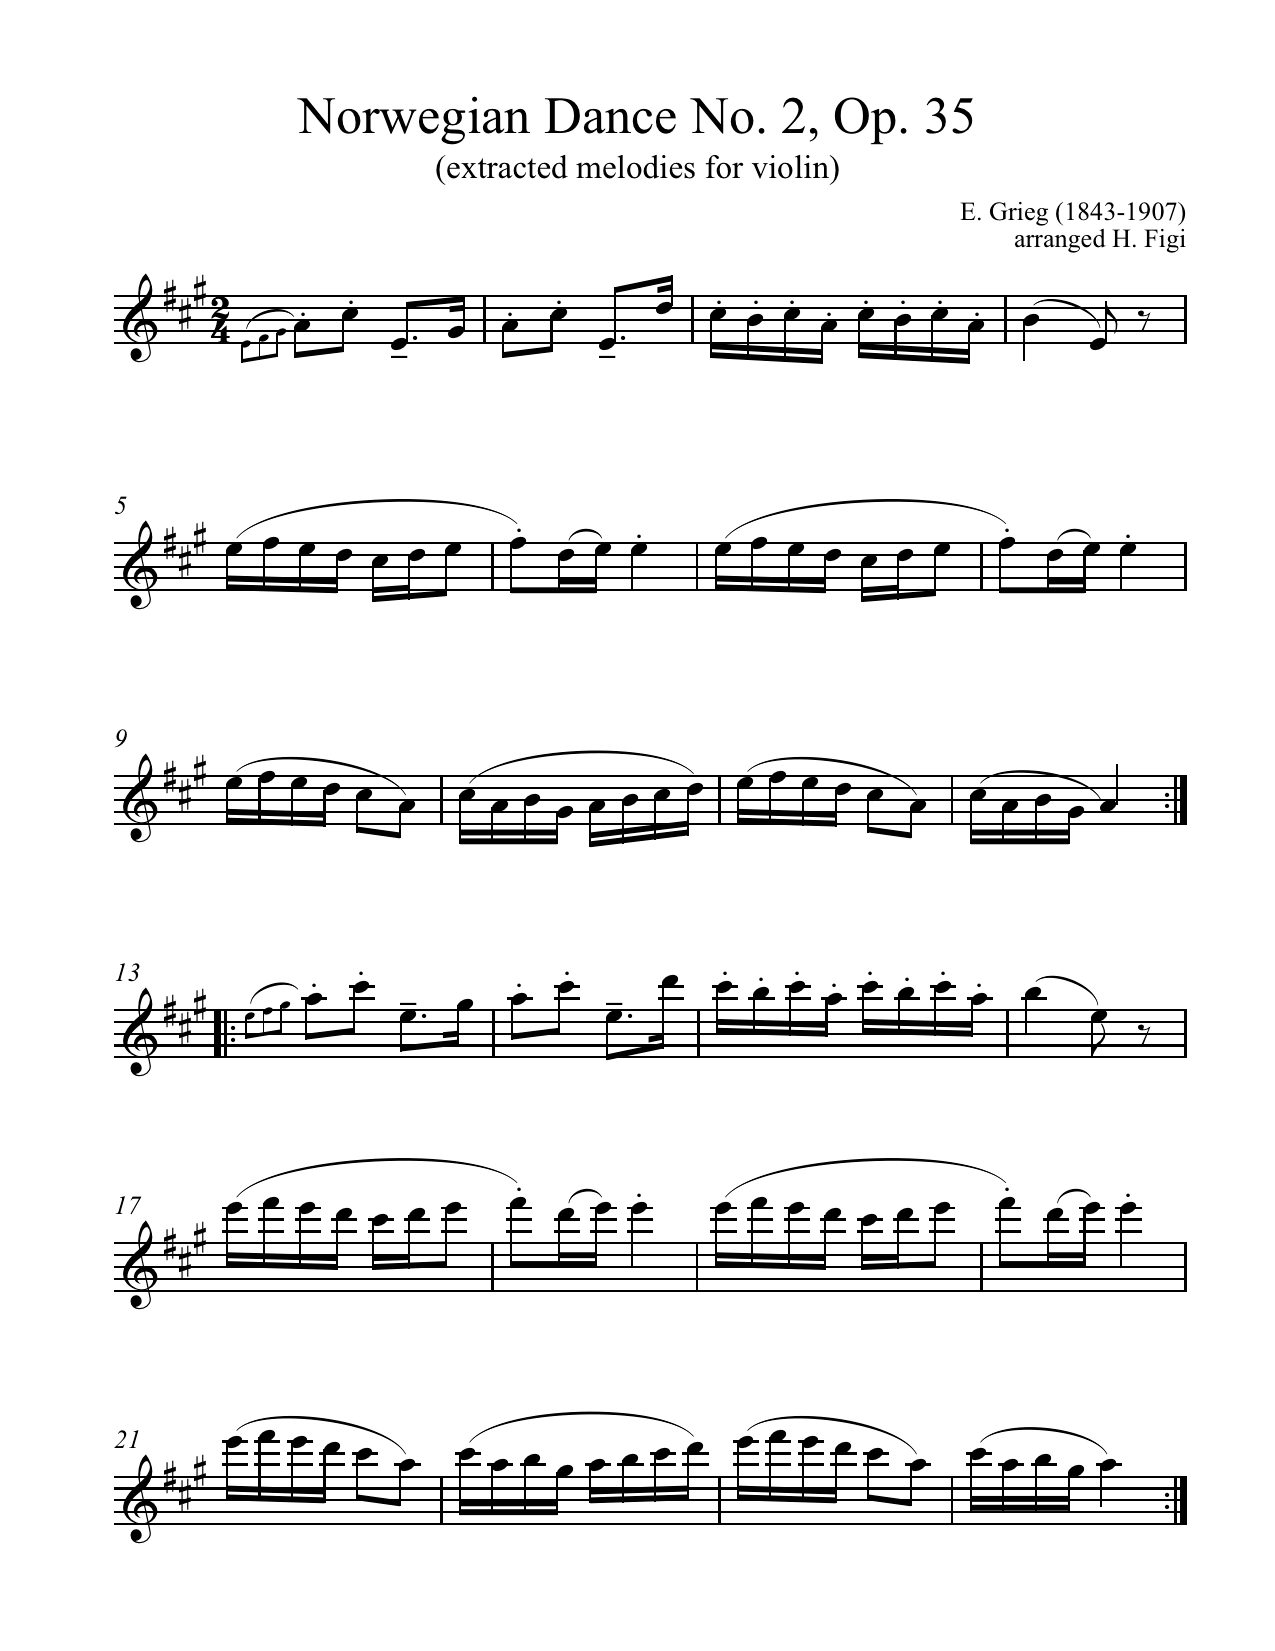 Norwegian Folk Music Extracted Melo S From E Grieg S